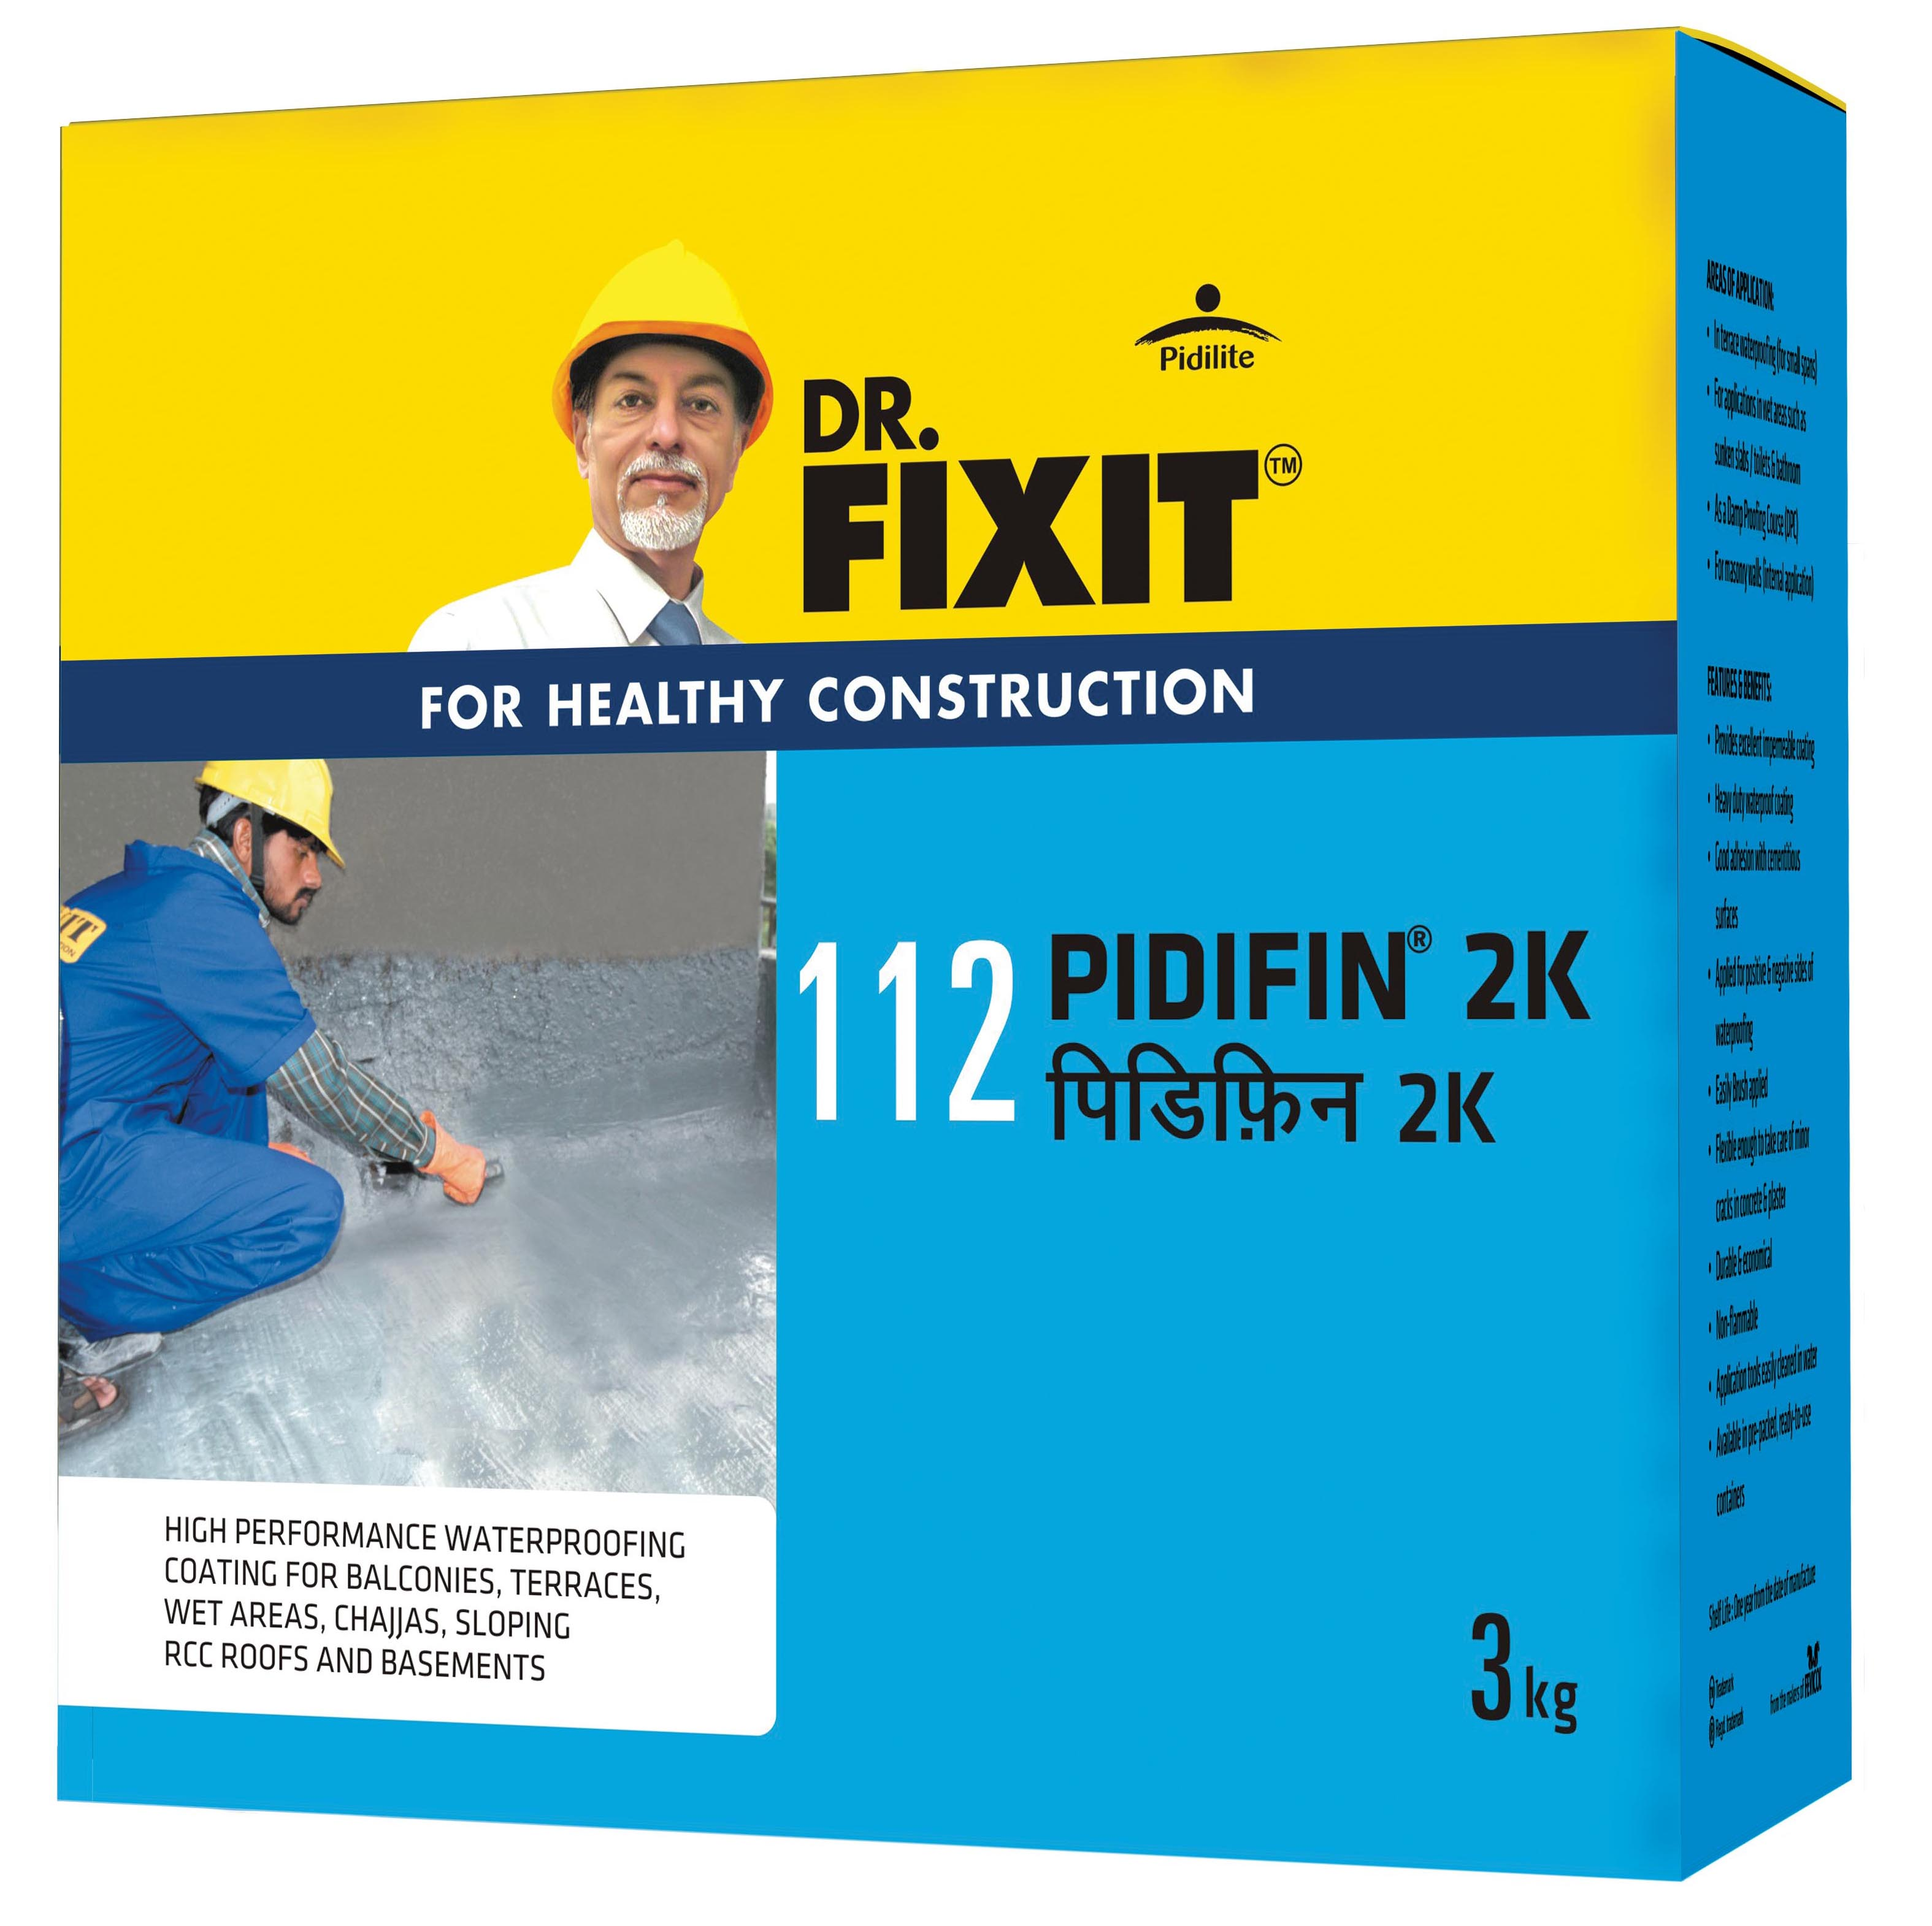 Dr Fixit Pidifin 2k Jindal Chemicals